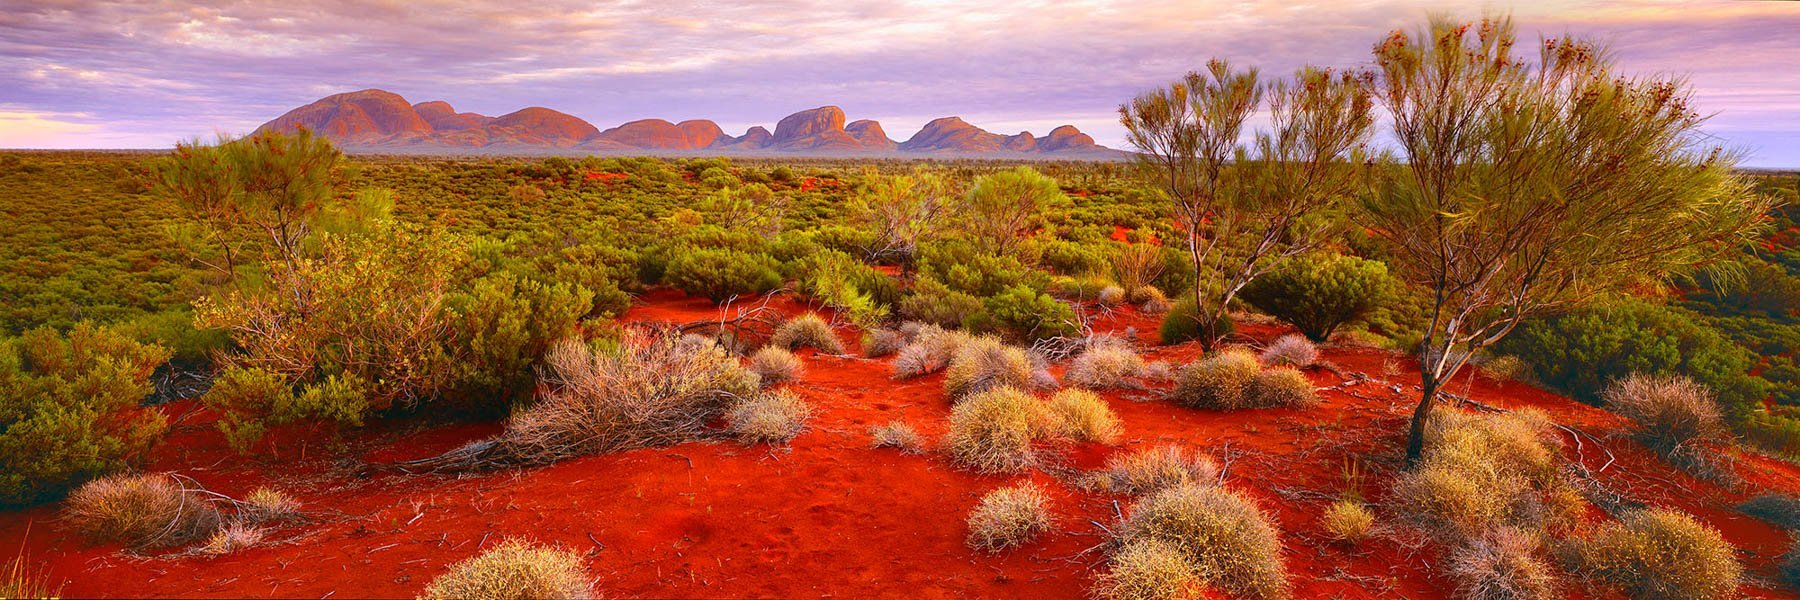 Sunset over the desert, Kata-Tjuta, NT, Australia.